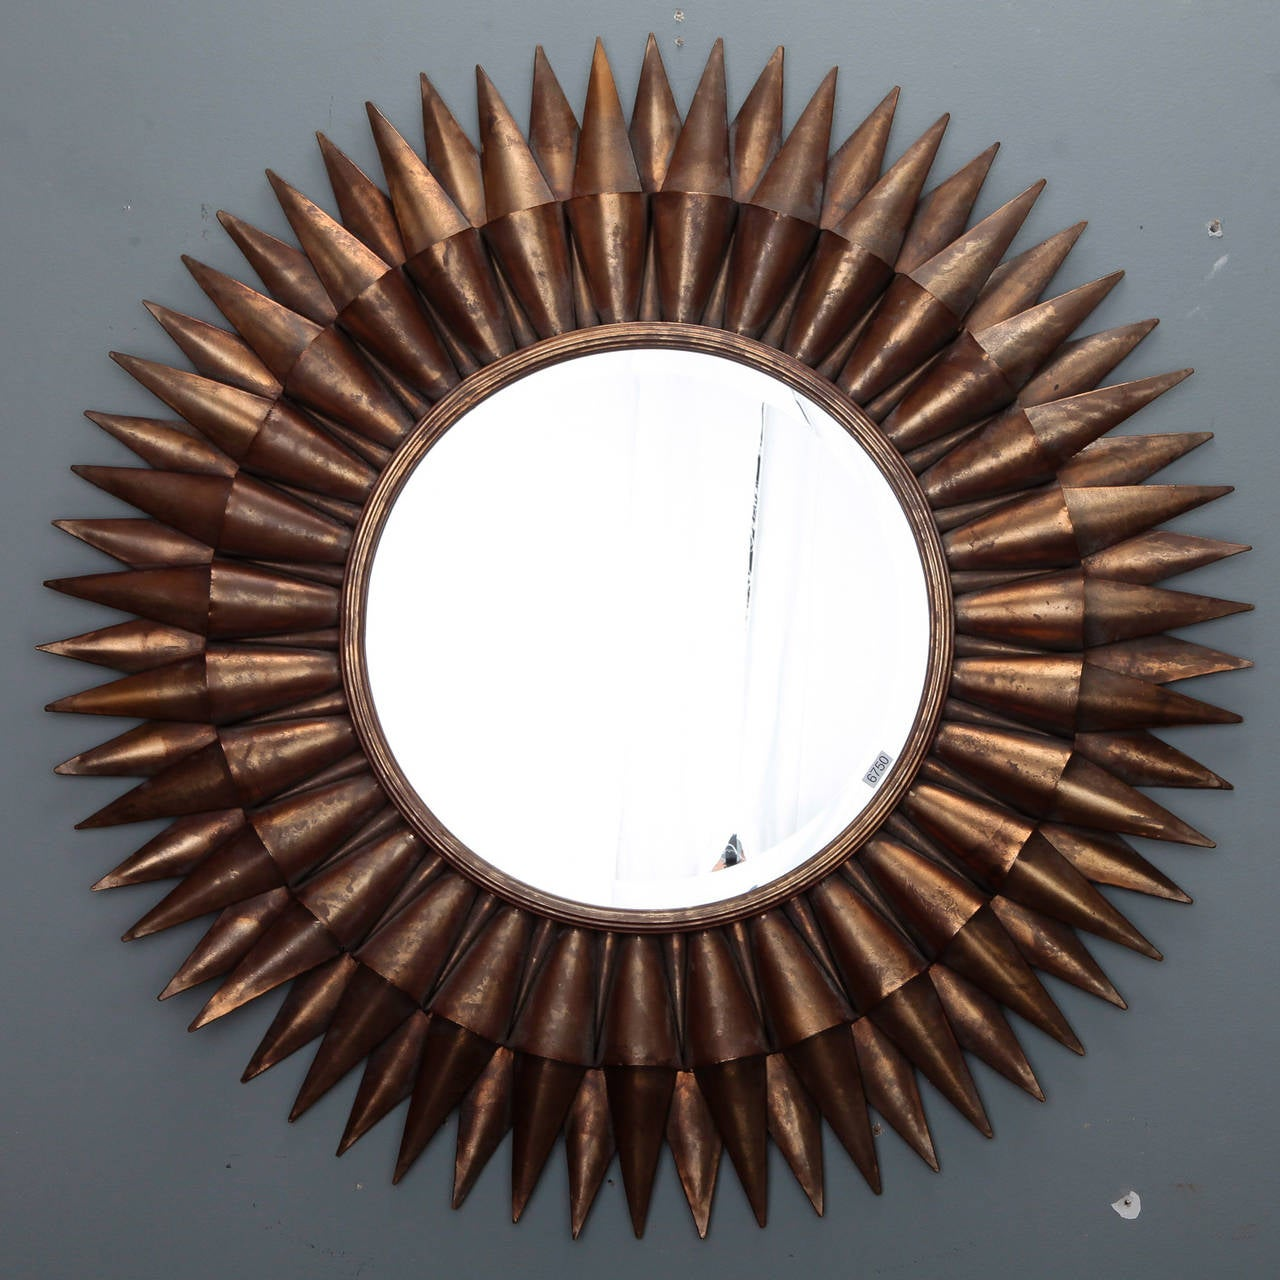 Circa 1970s Spanish sunburst mirror with a two layer frame of gilded metal rays and round center mirror.